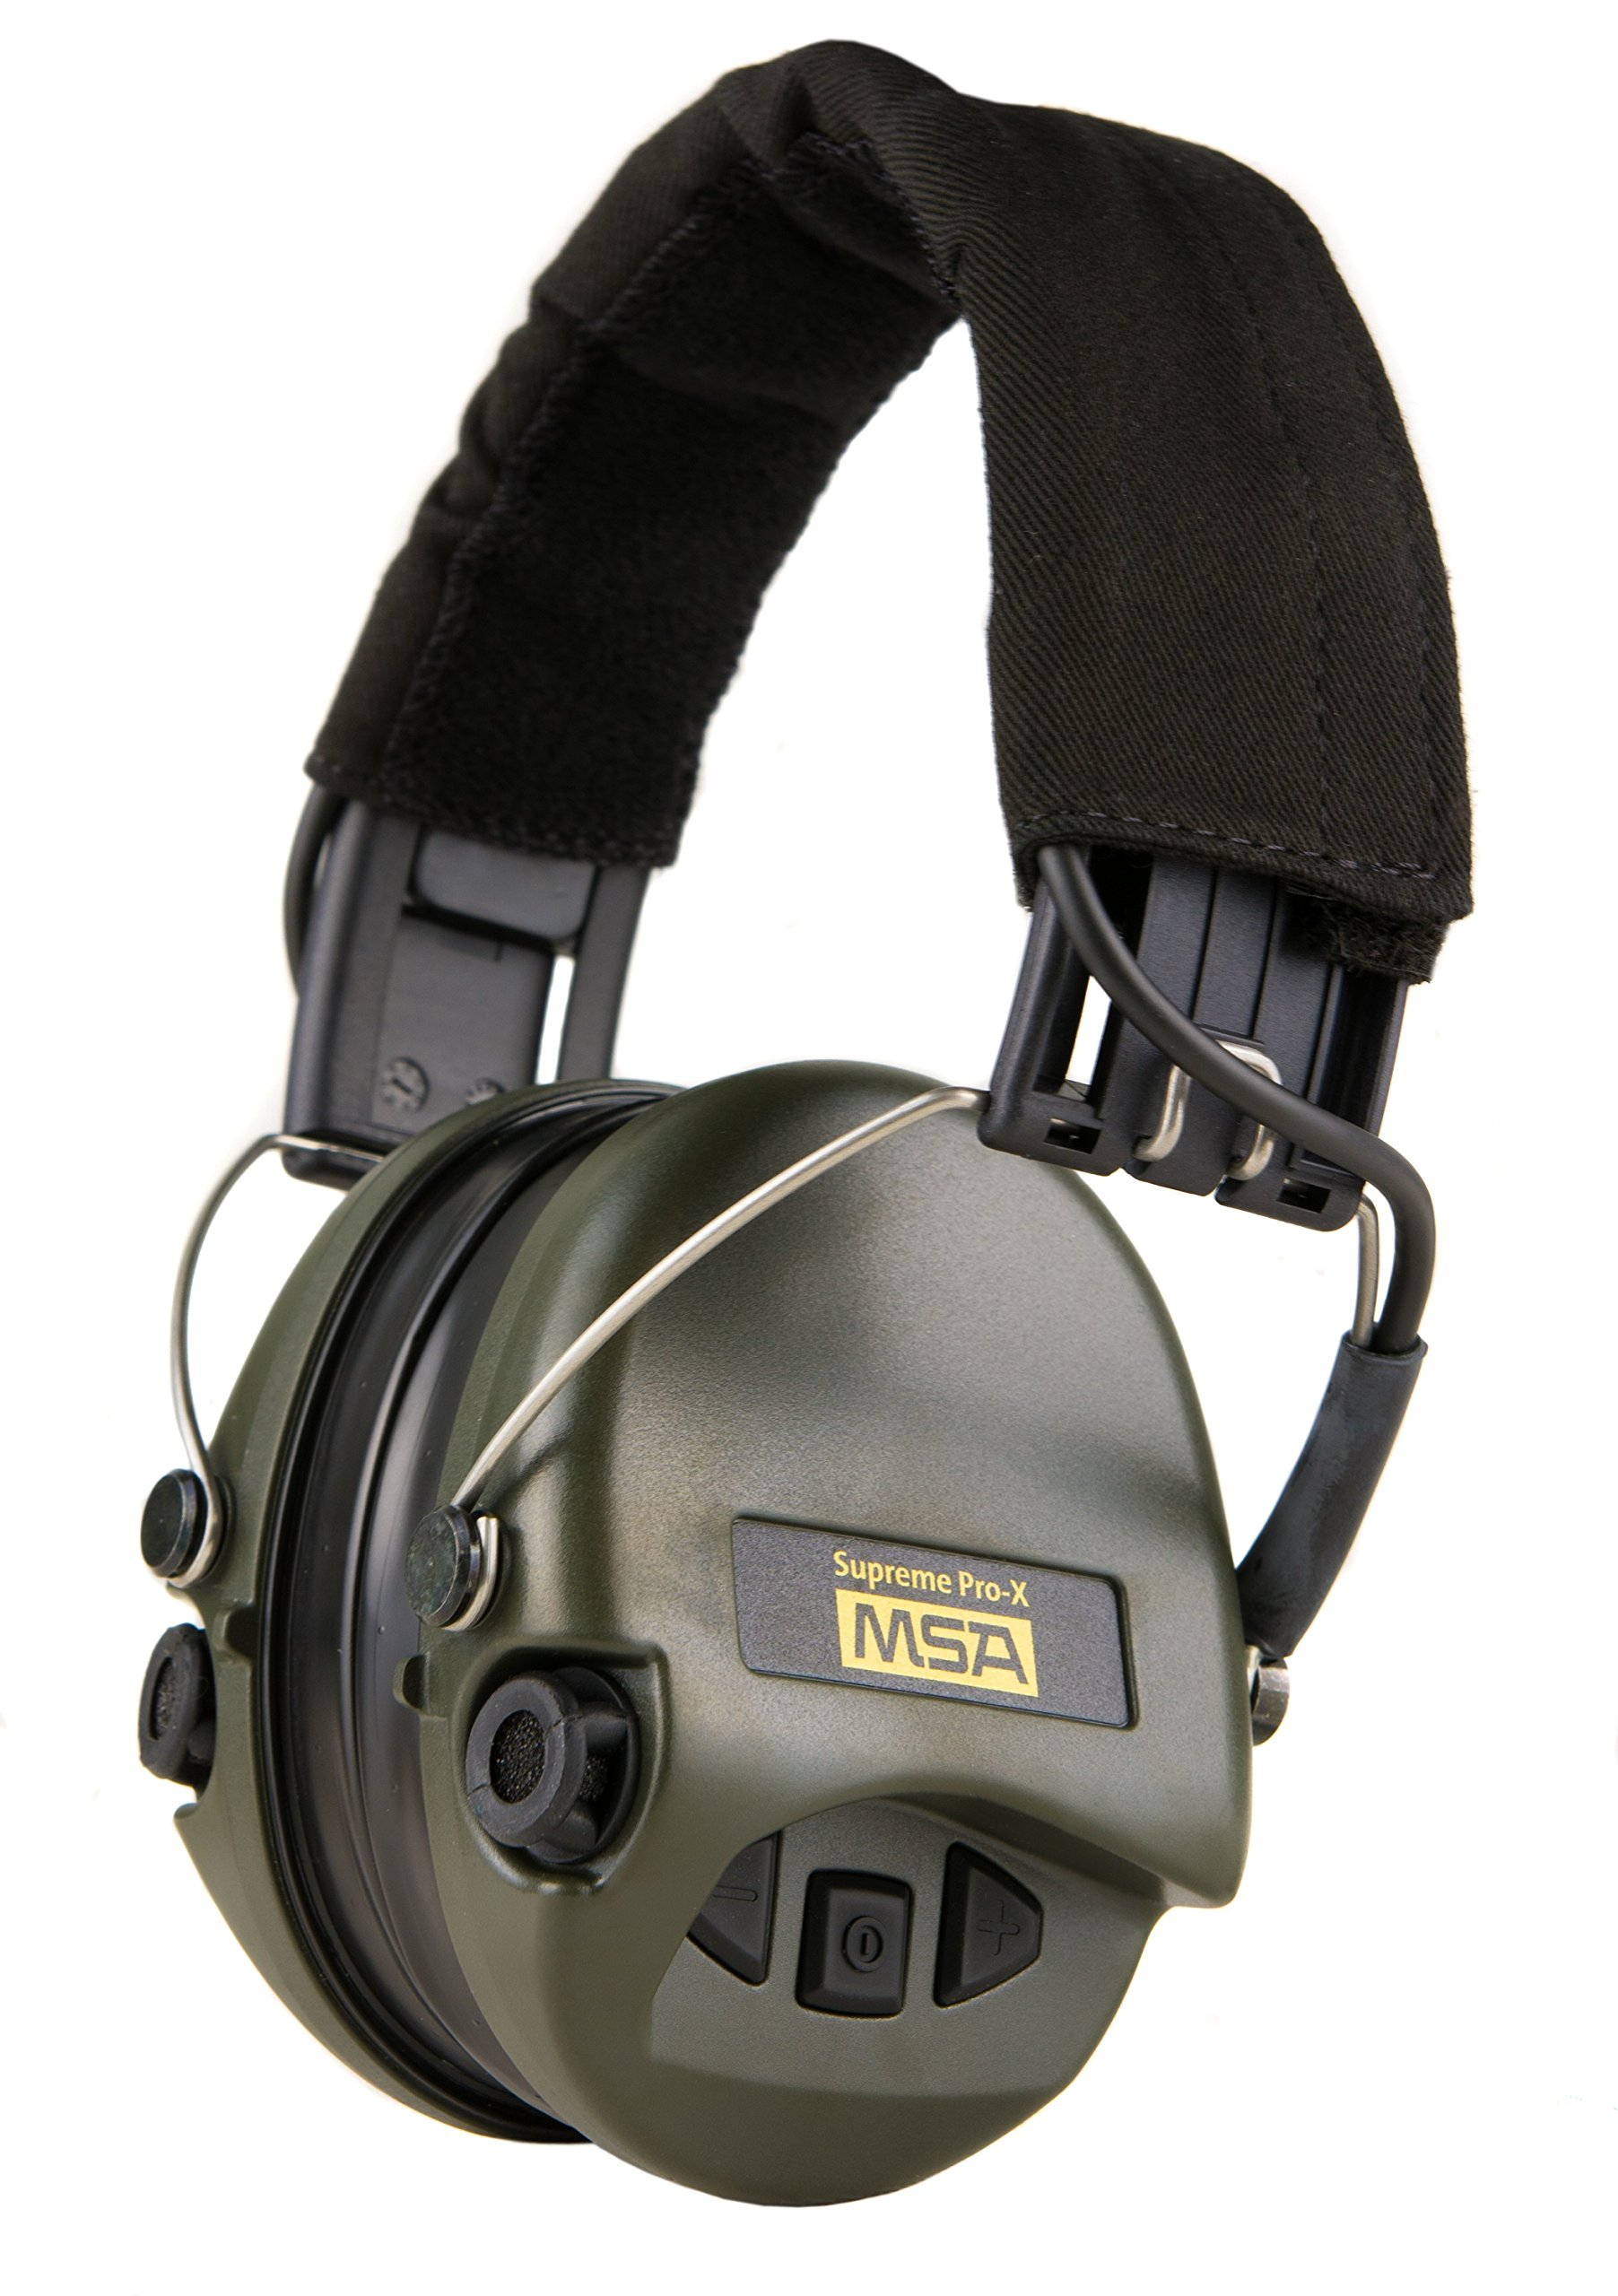 MSA Sordin Supreme PRO X - Digital Electronic Earmuff Amplification AUX-Input Black-Green Gel-Seals by MSA Sordin